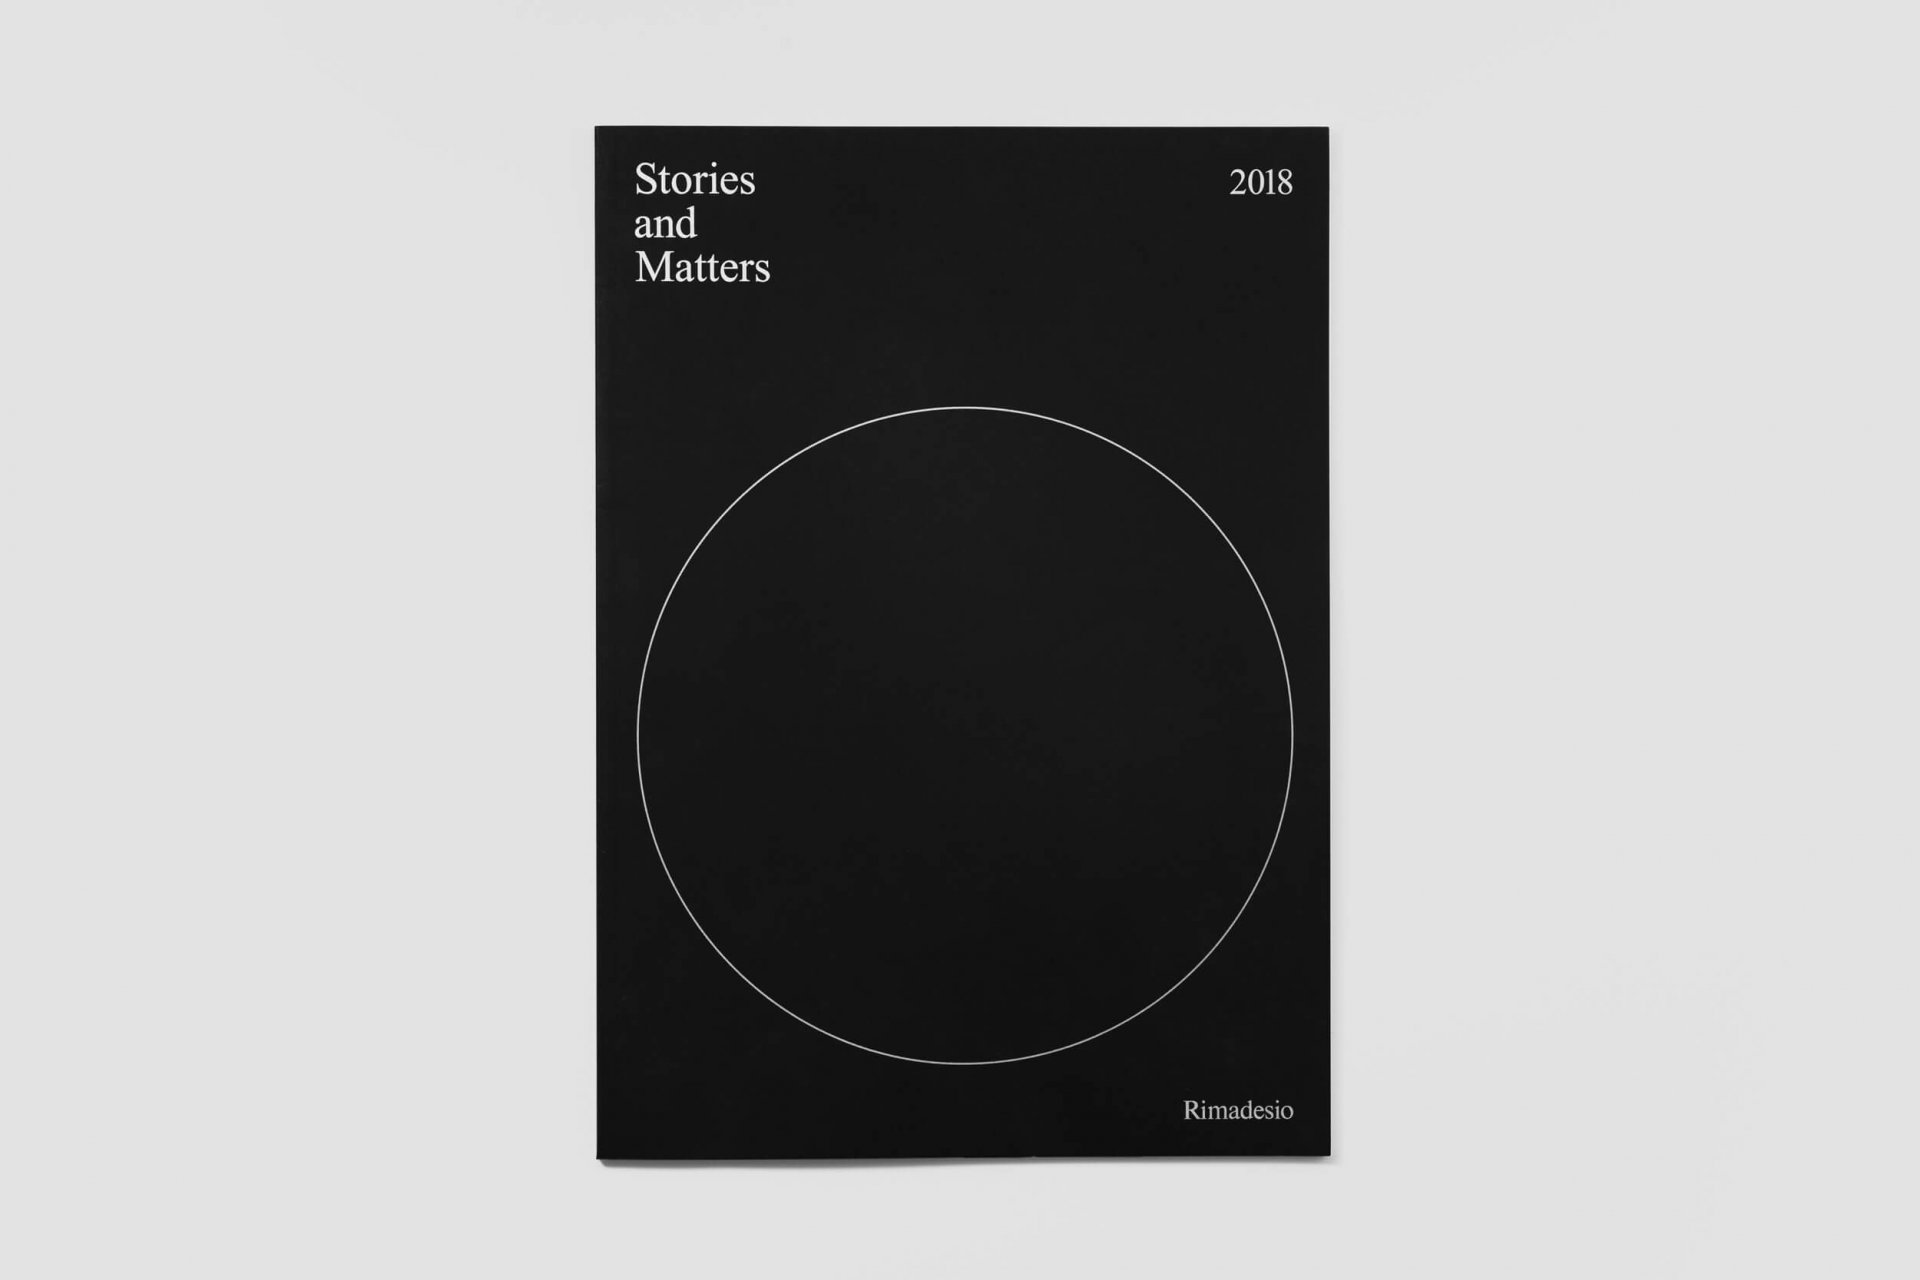 Stories and matters 2018